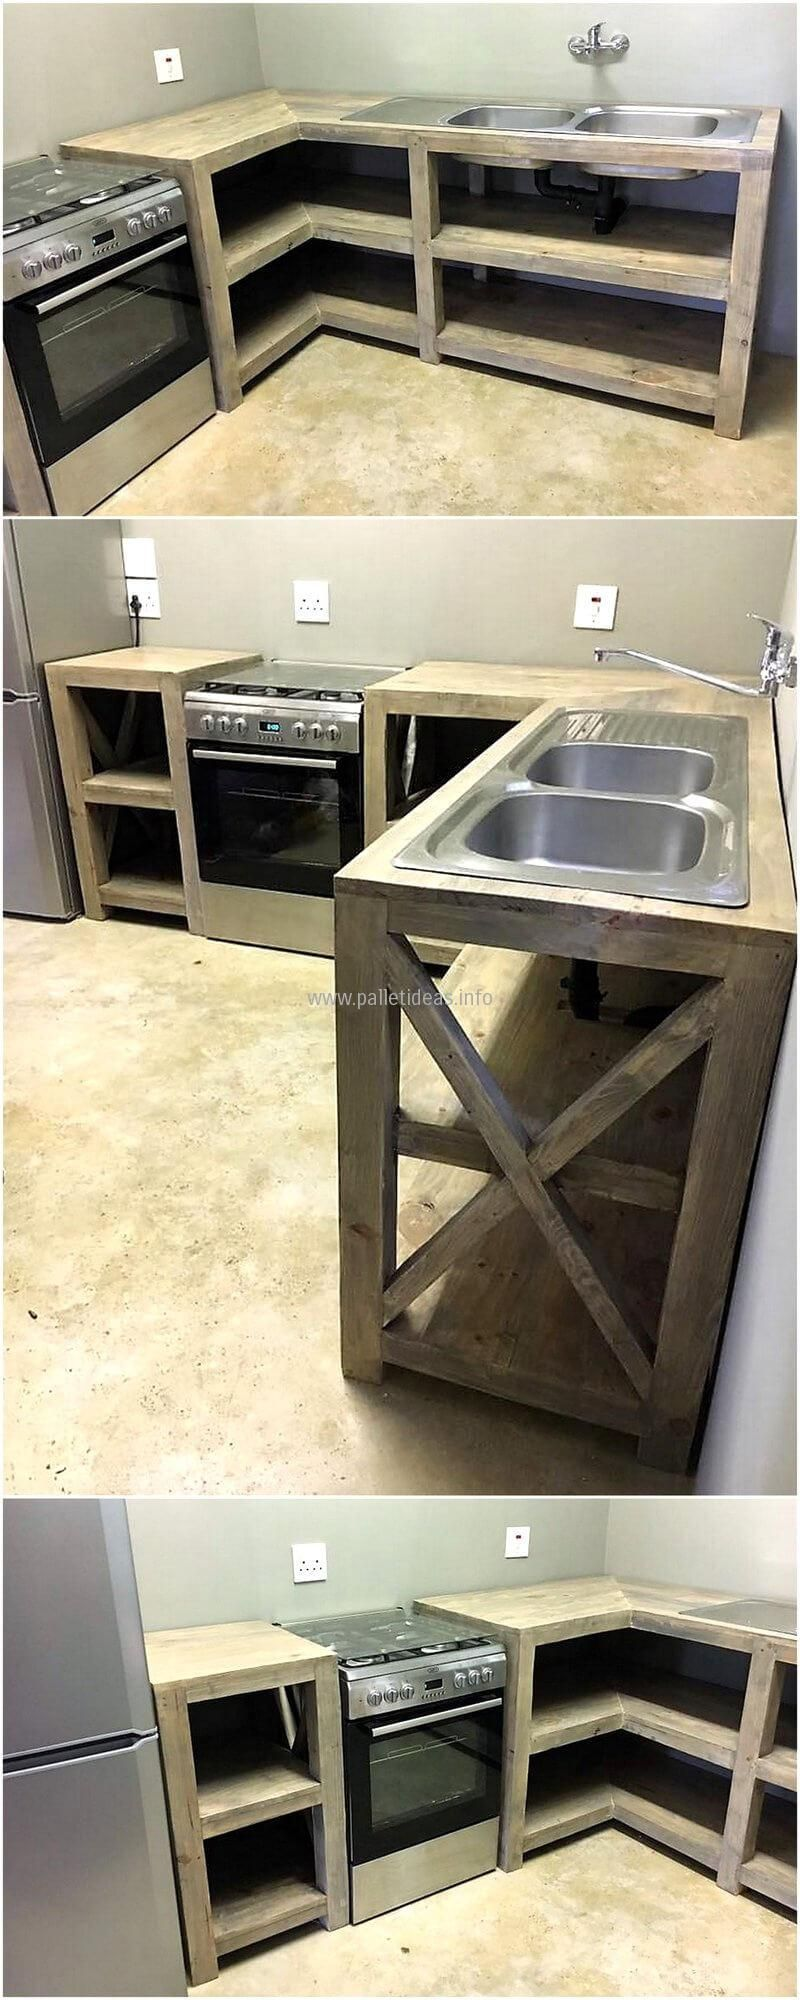 recycled wood pallet kitchen idea remodeling garage pinterest m bel k chenm bel und diy m bel. Black Bedroom Furniture Sets. Home Design Ideas